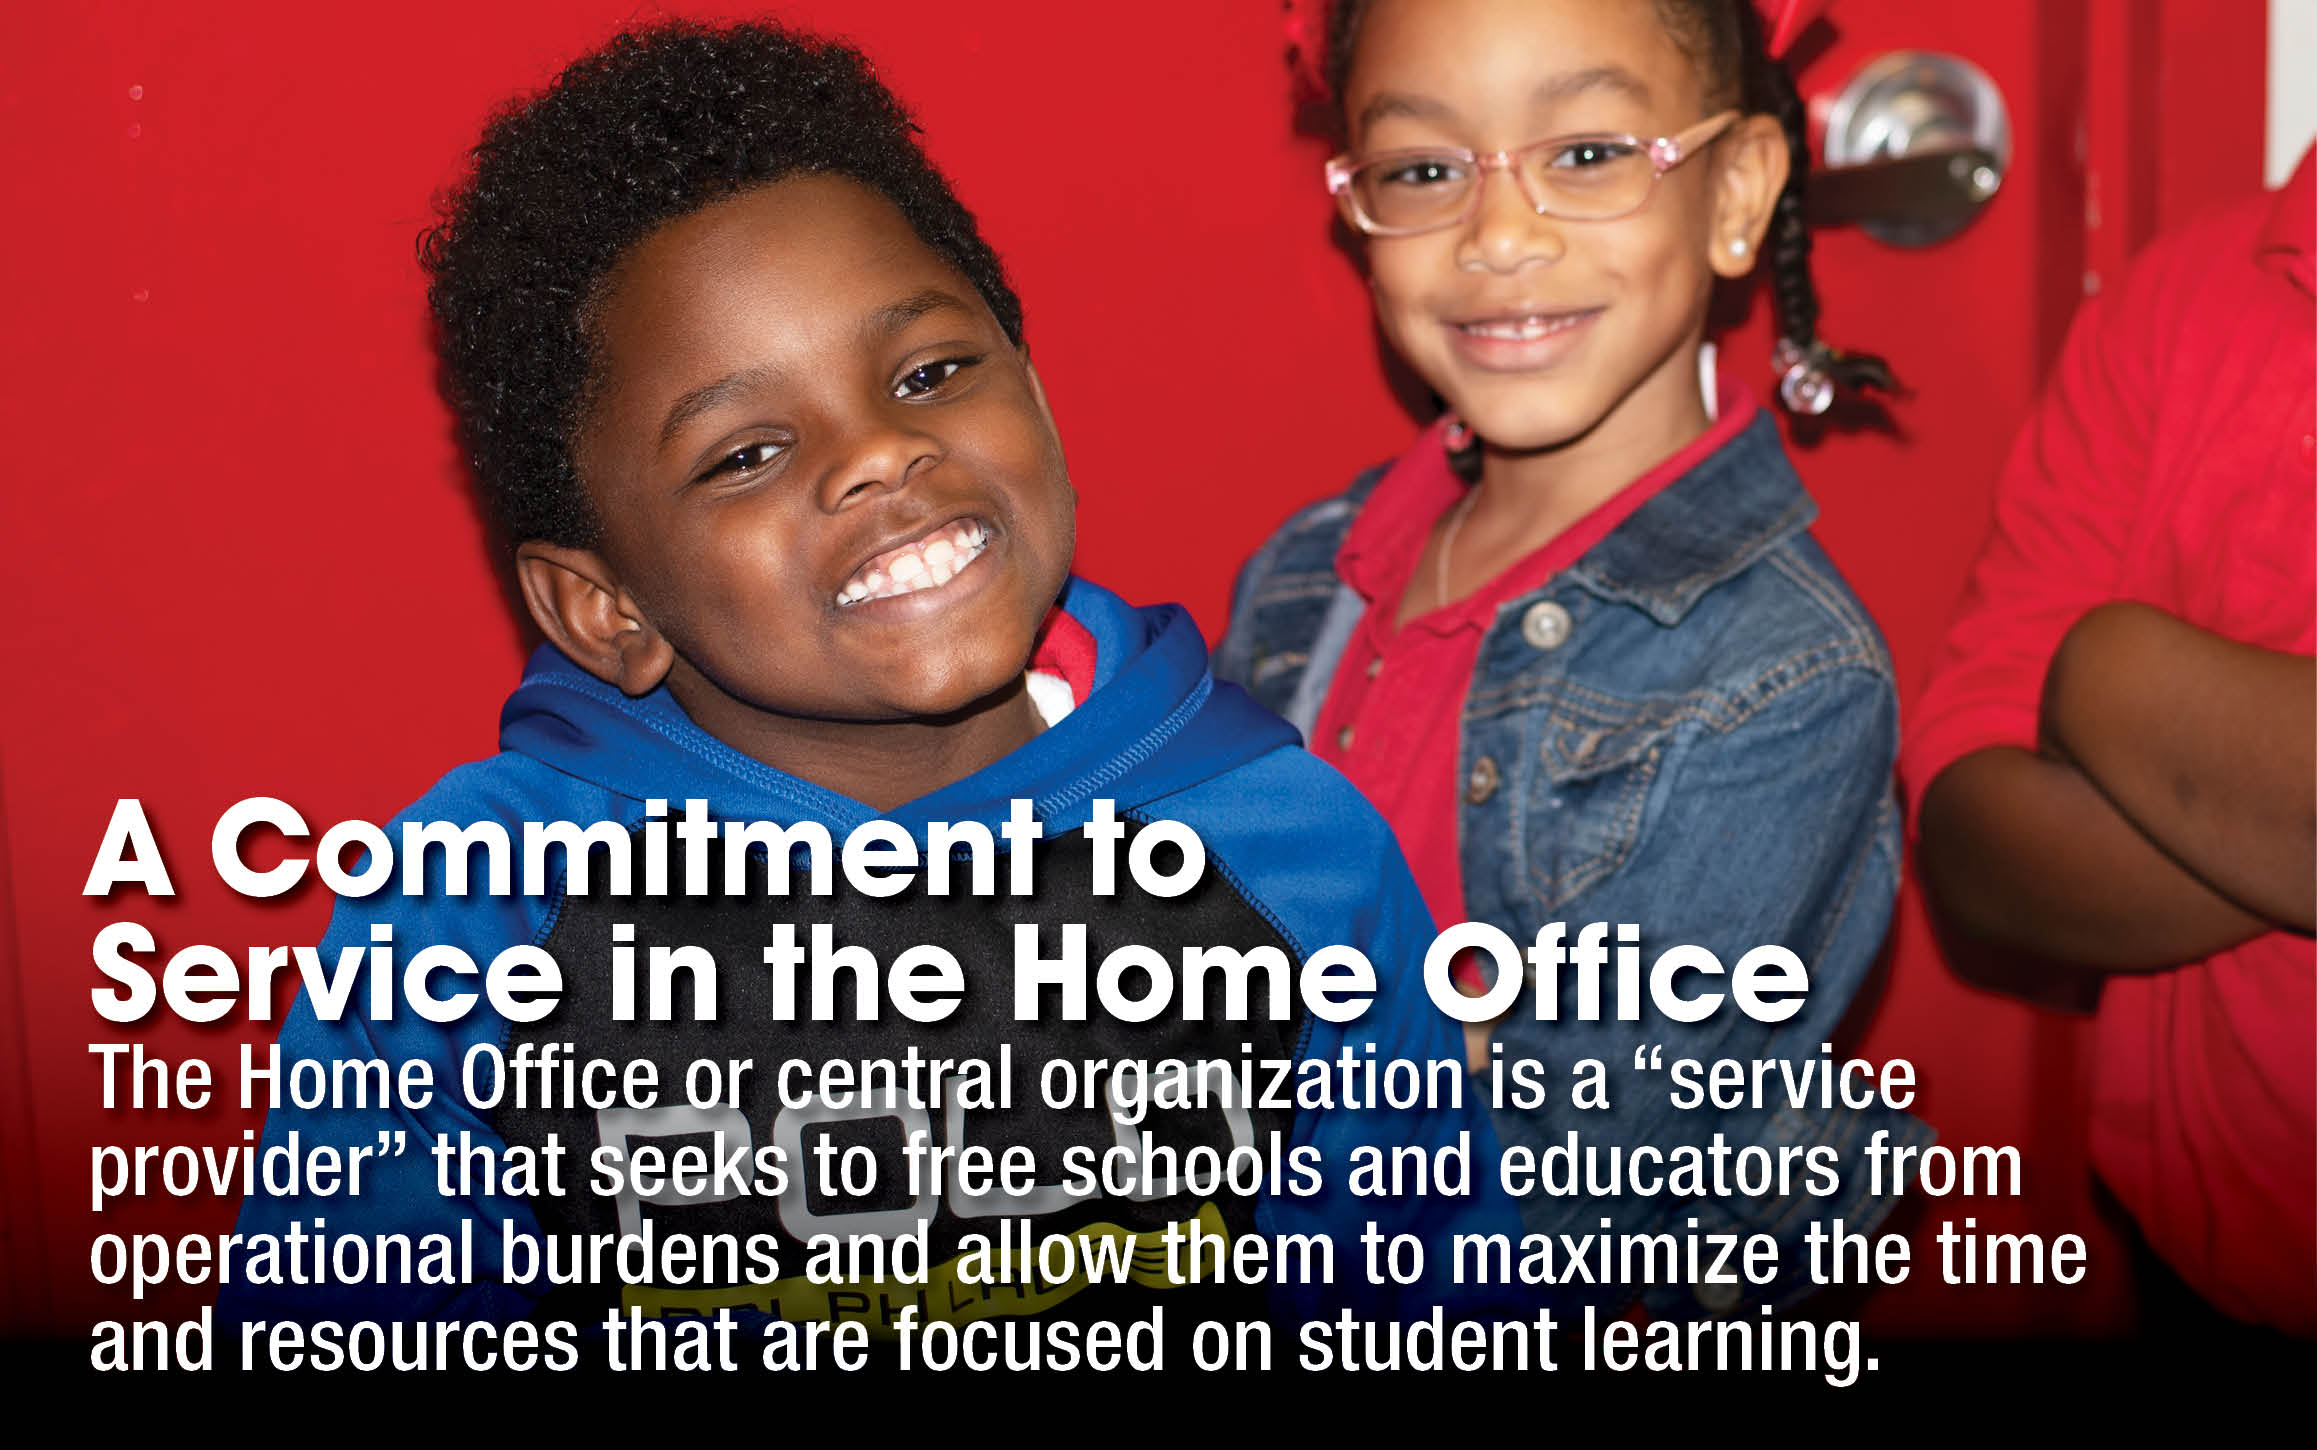 """A Commitment to Service in the Home Office - The Home Office or central organization is a """"service provider"""" that seeks to free schools and educators from operational burdens and allows them to maximize the time and resources that are focused on student learning."""